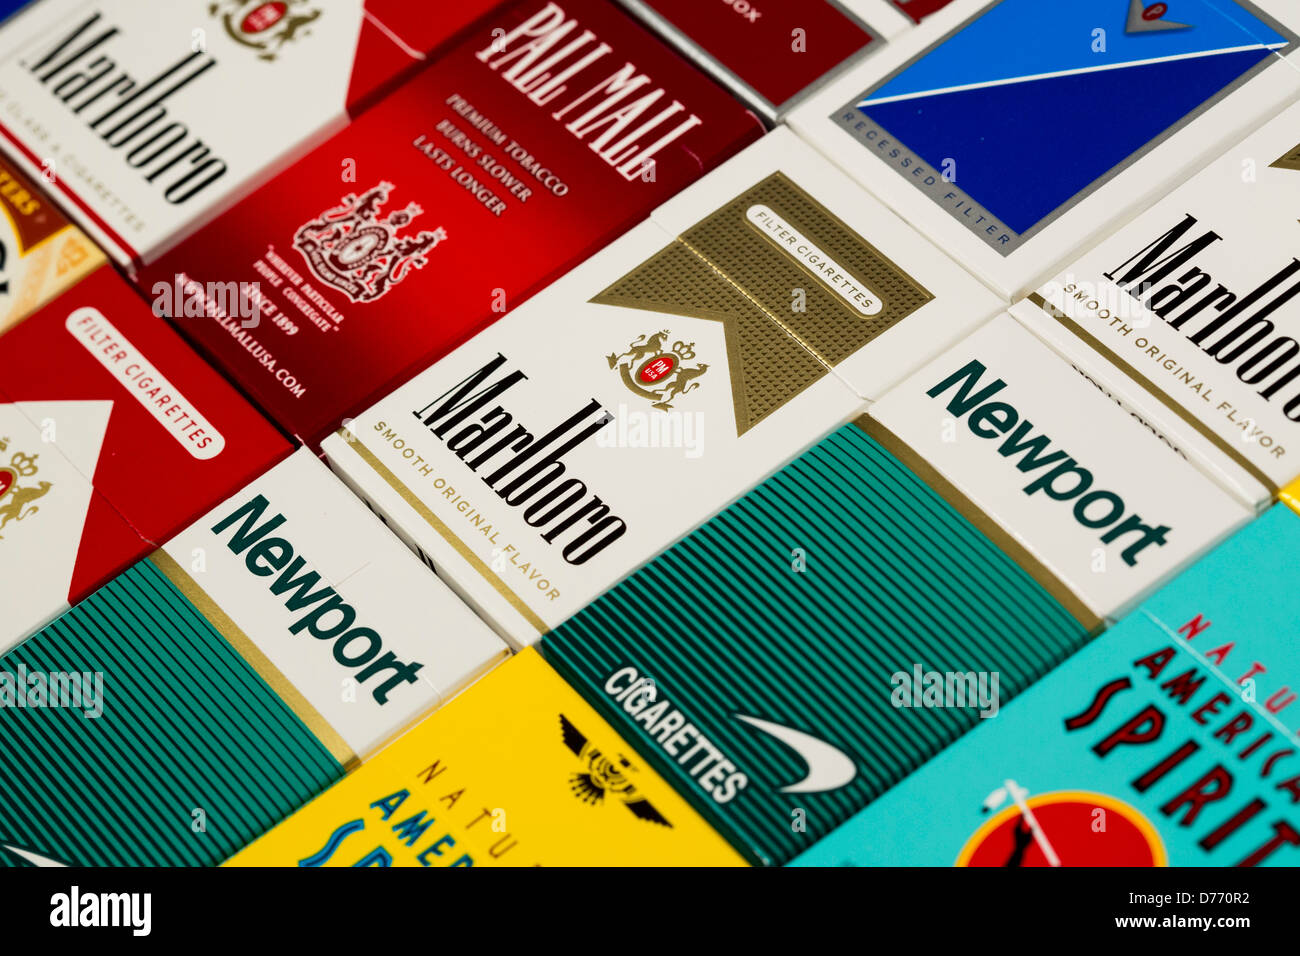 Menthol cigarettes Marlboro brands in Maryland